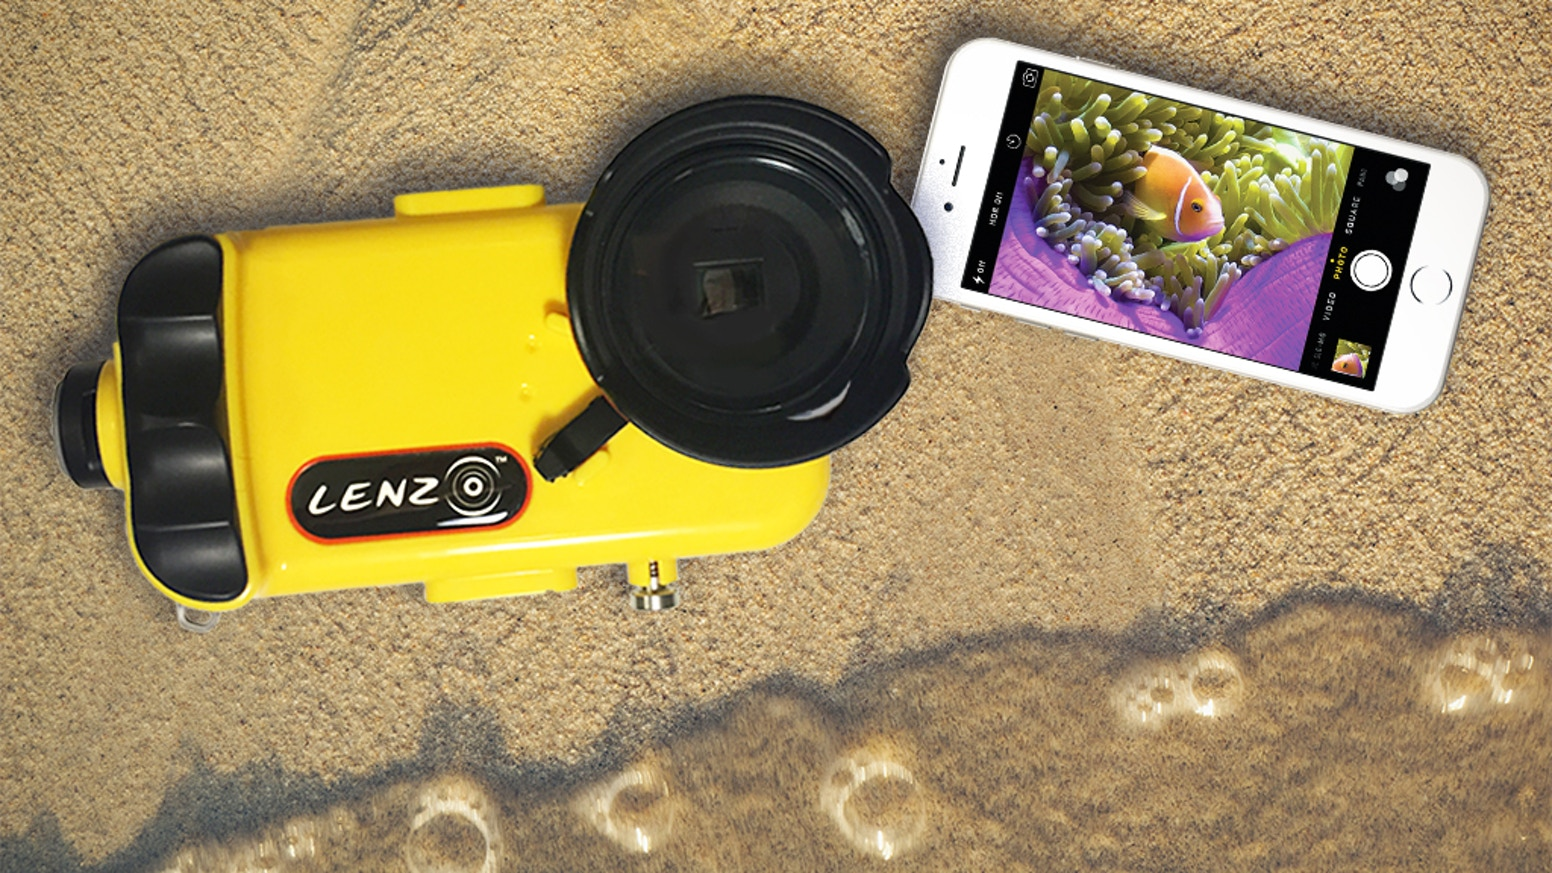 new arrive 09d96 cb2cd LenzO®: The Future of Underwater iPhone Imaging by ValsTech, Inc ...